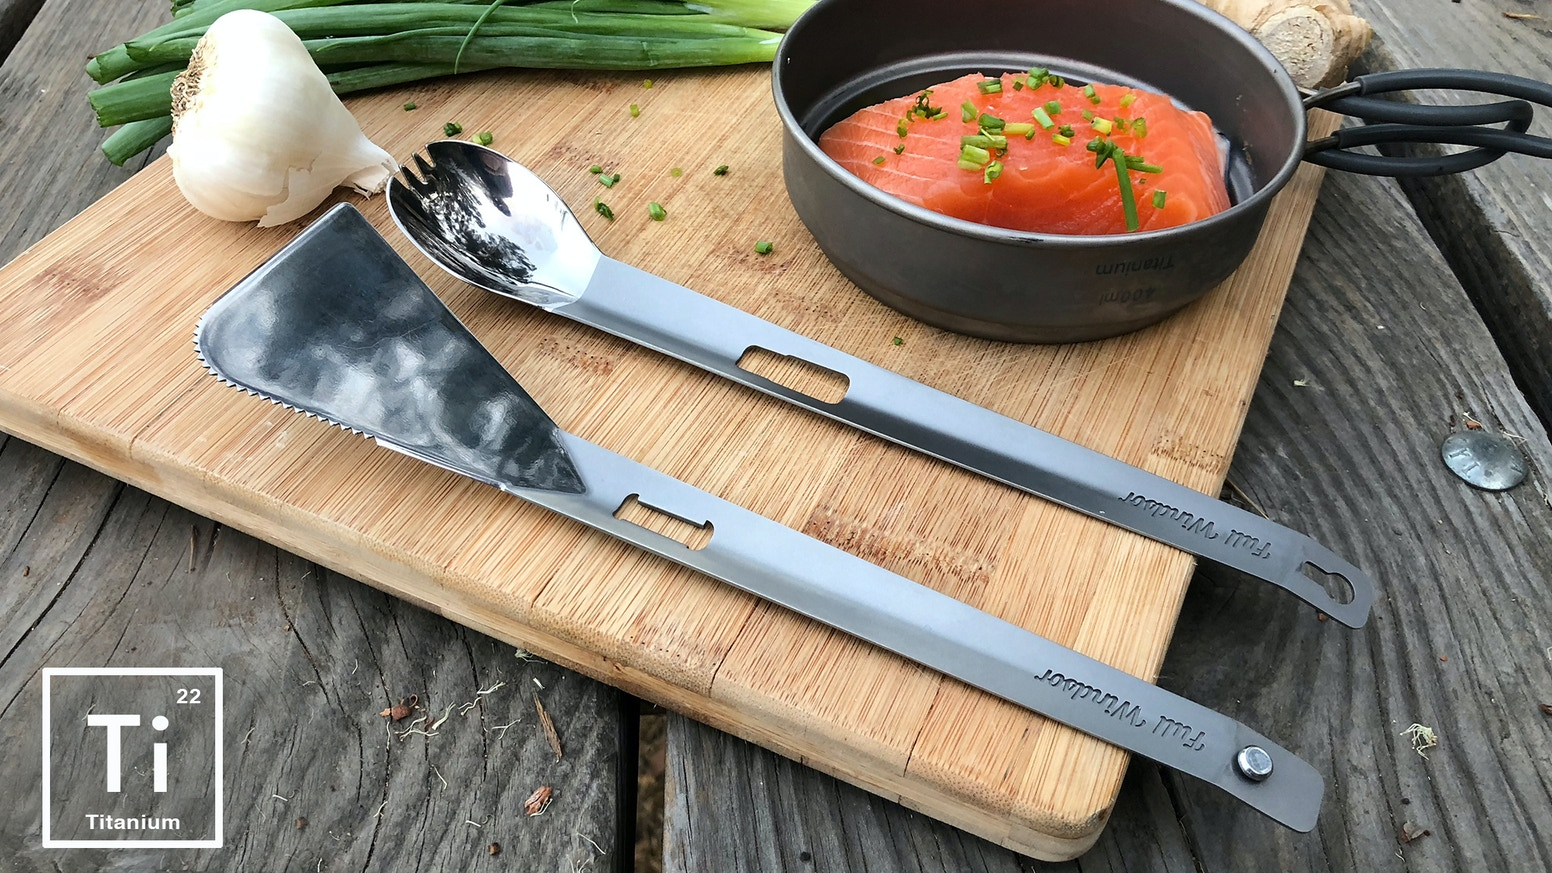 TONGS - SPATULA - SPORK. Super lightweight cooking / eating utensil for  Camping / BBQ / Backpacking Weighing just 1.8oz / 50g